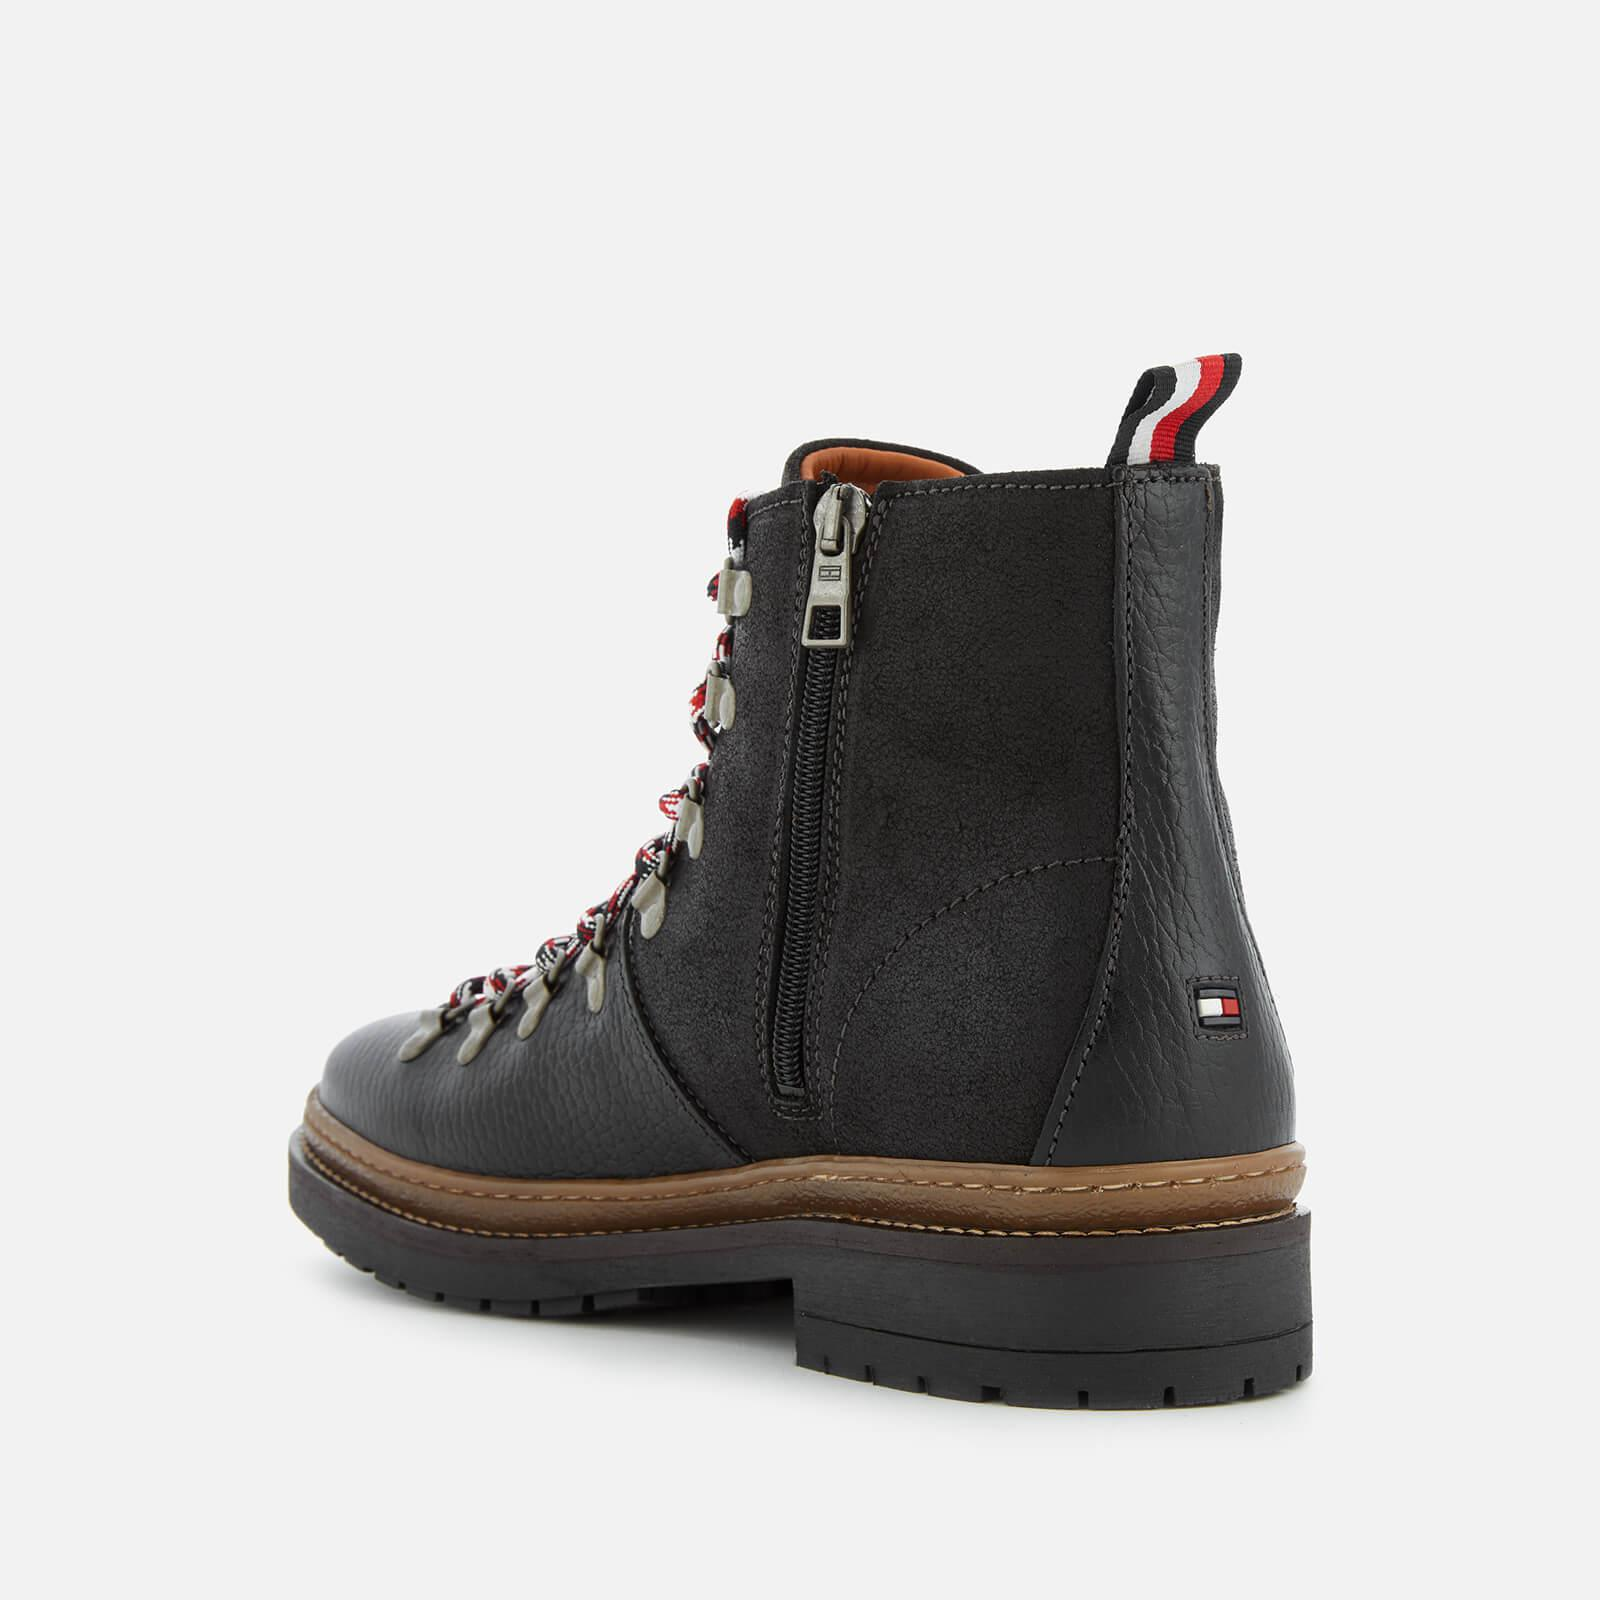 843e8a3e2160d Tommy Hilfiger - Black Elevated Outdoor Leather Hiking Boots for Men -  Lyst. View fullscreen